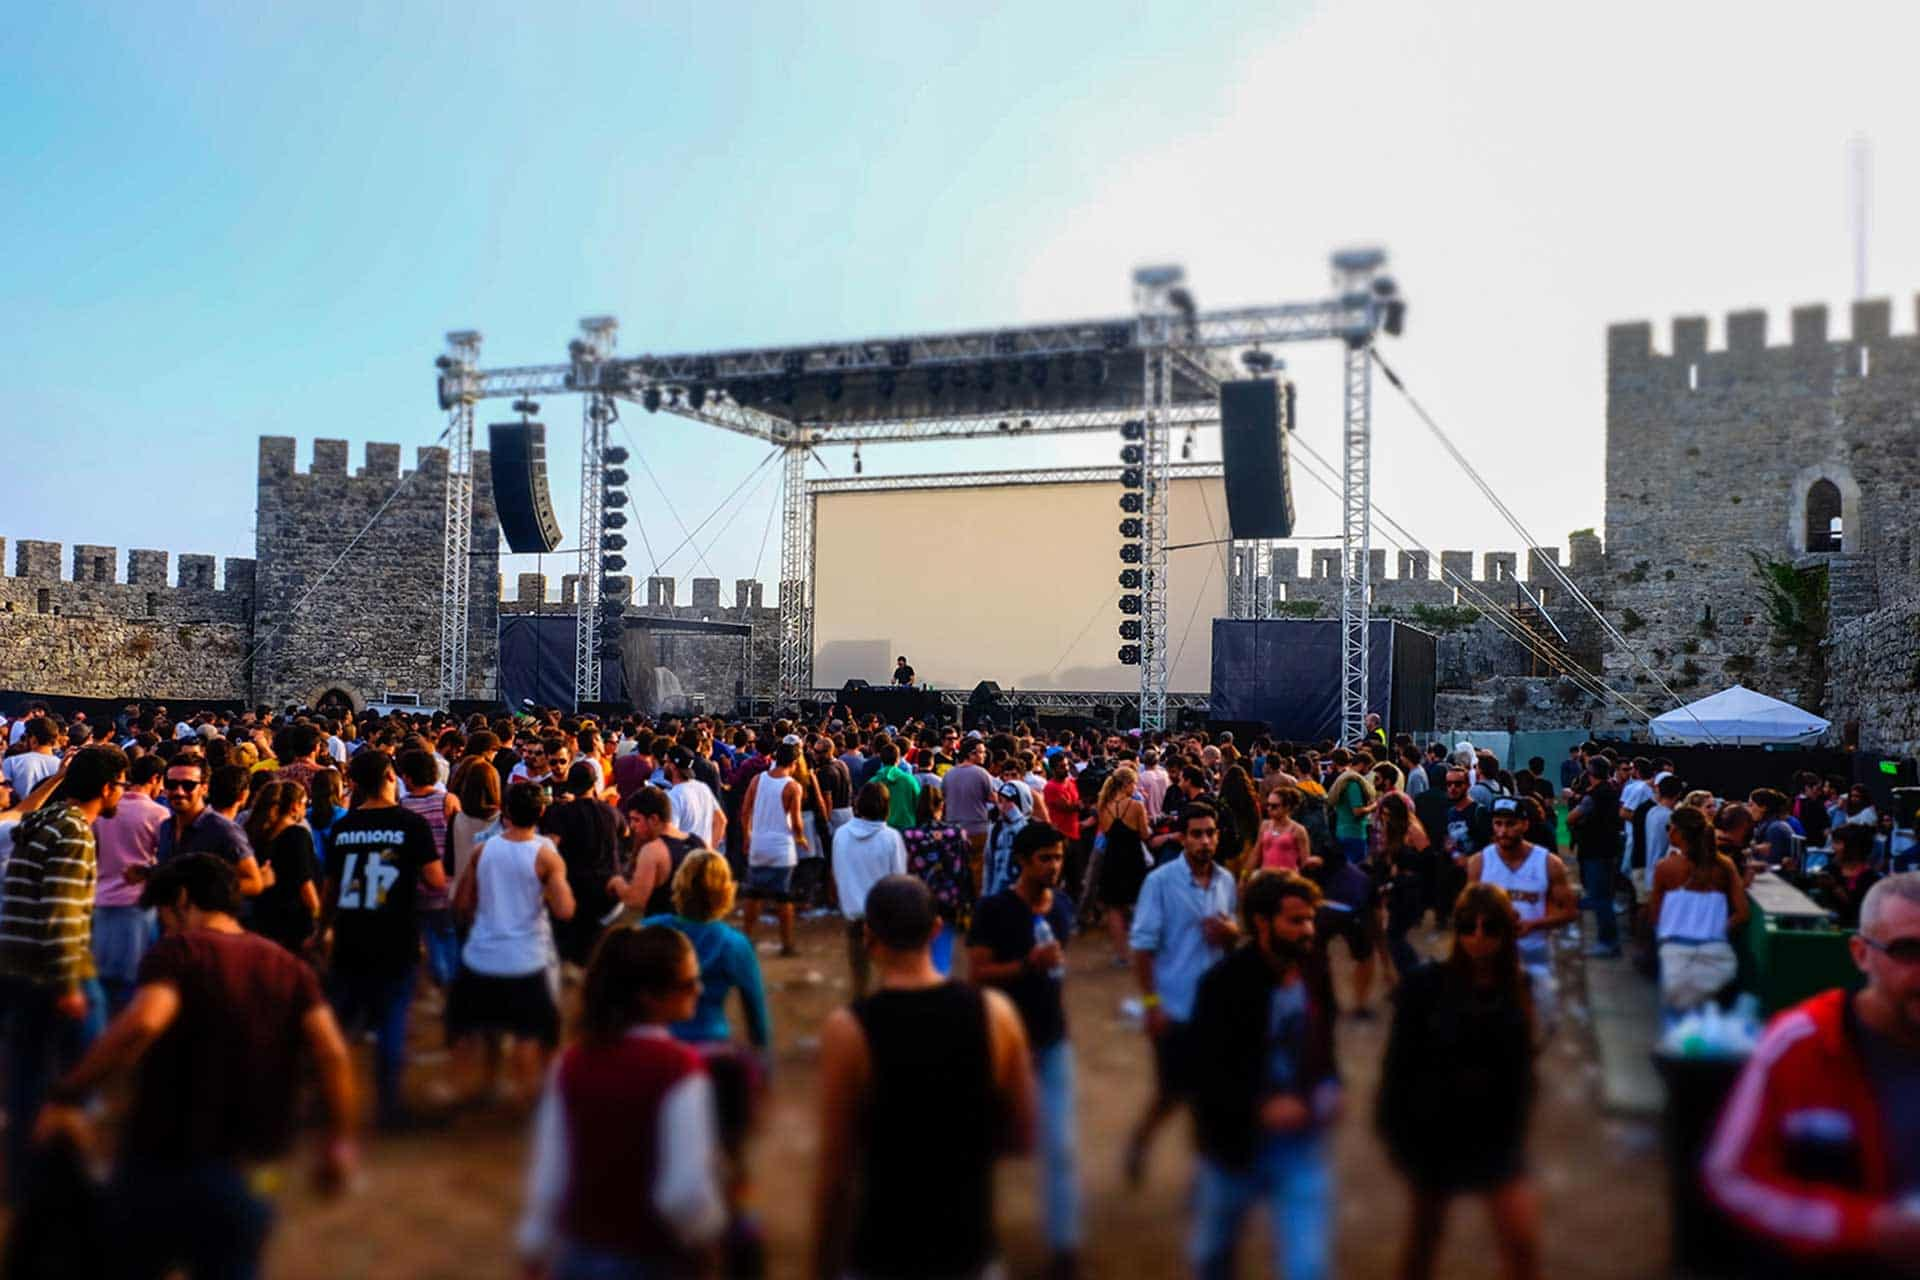 Raving in a castle